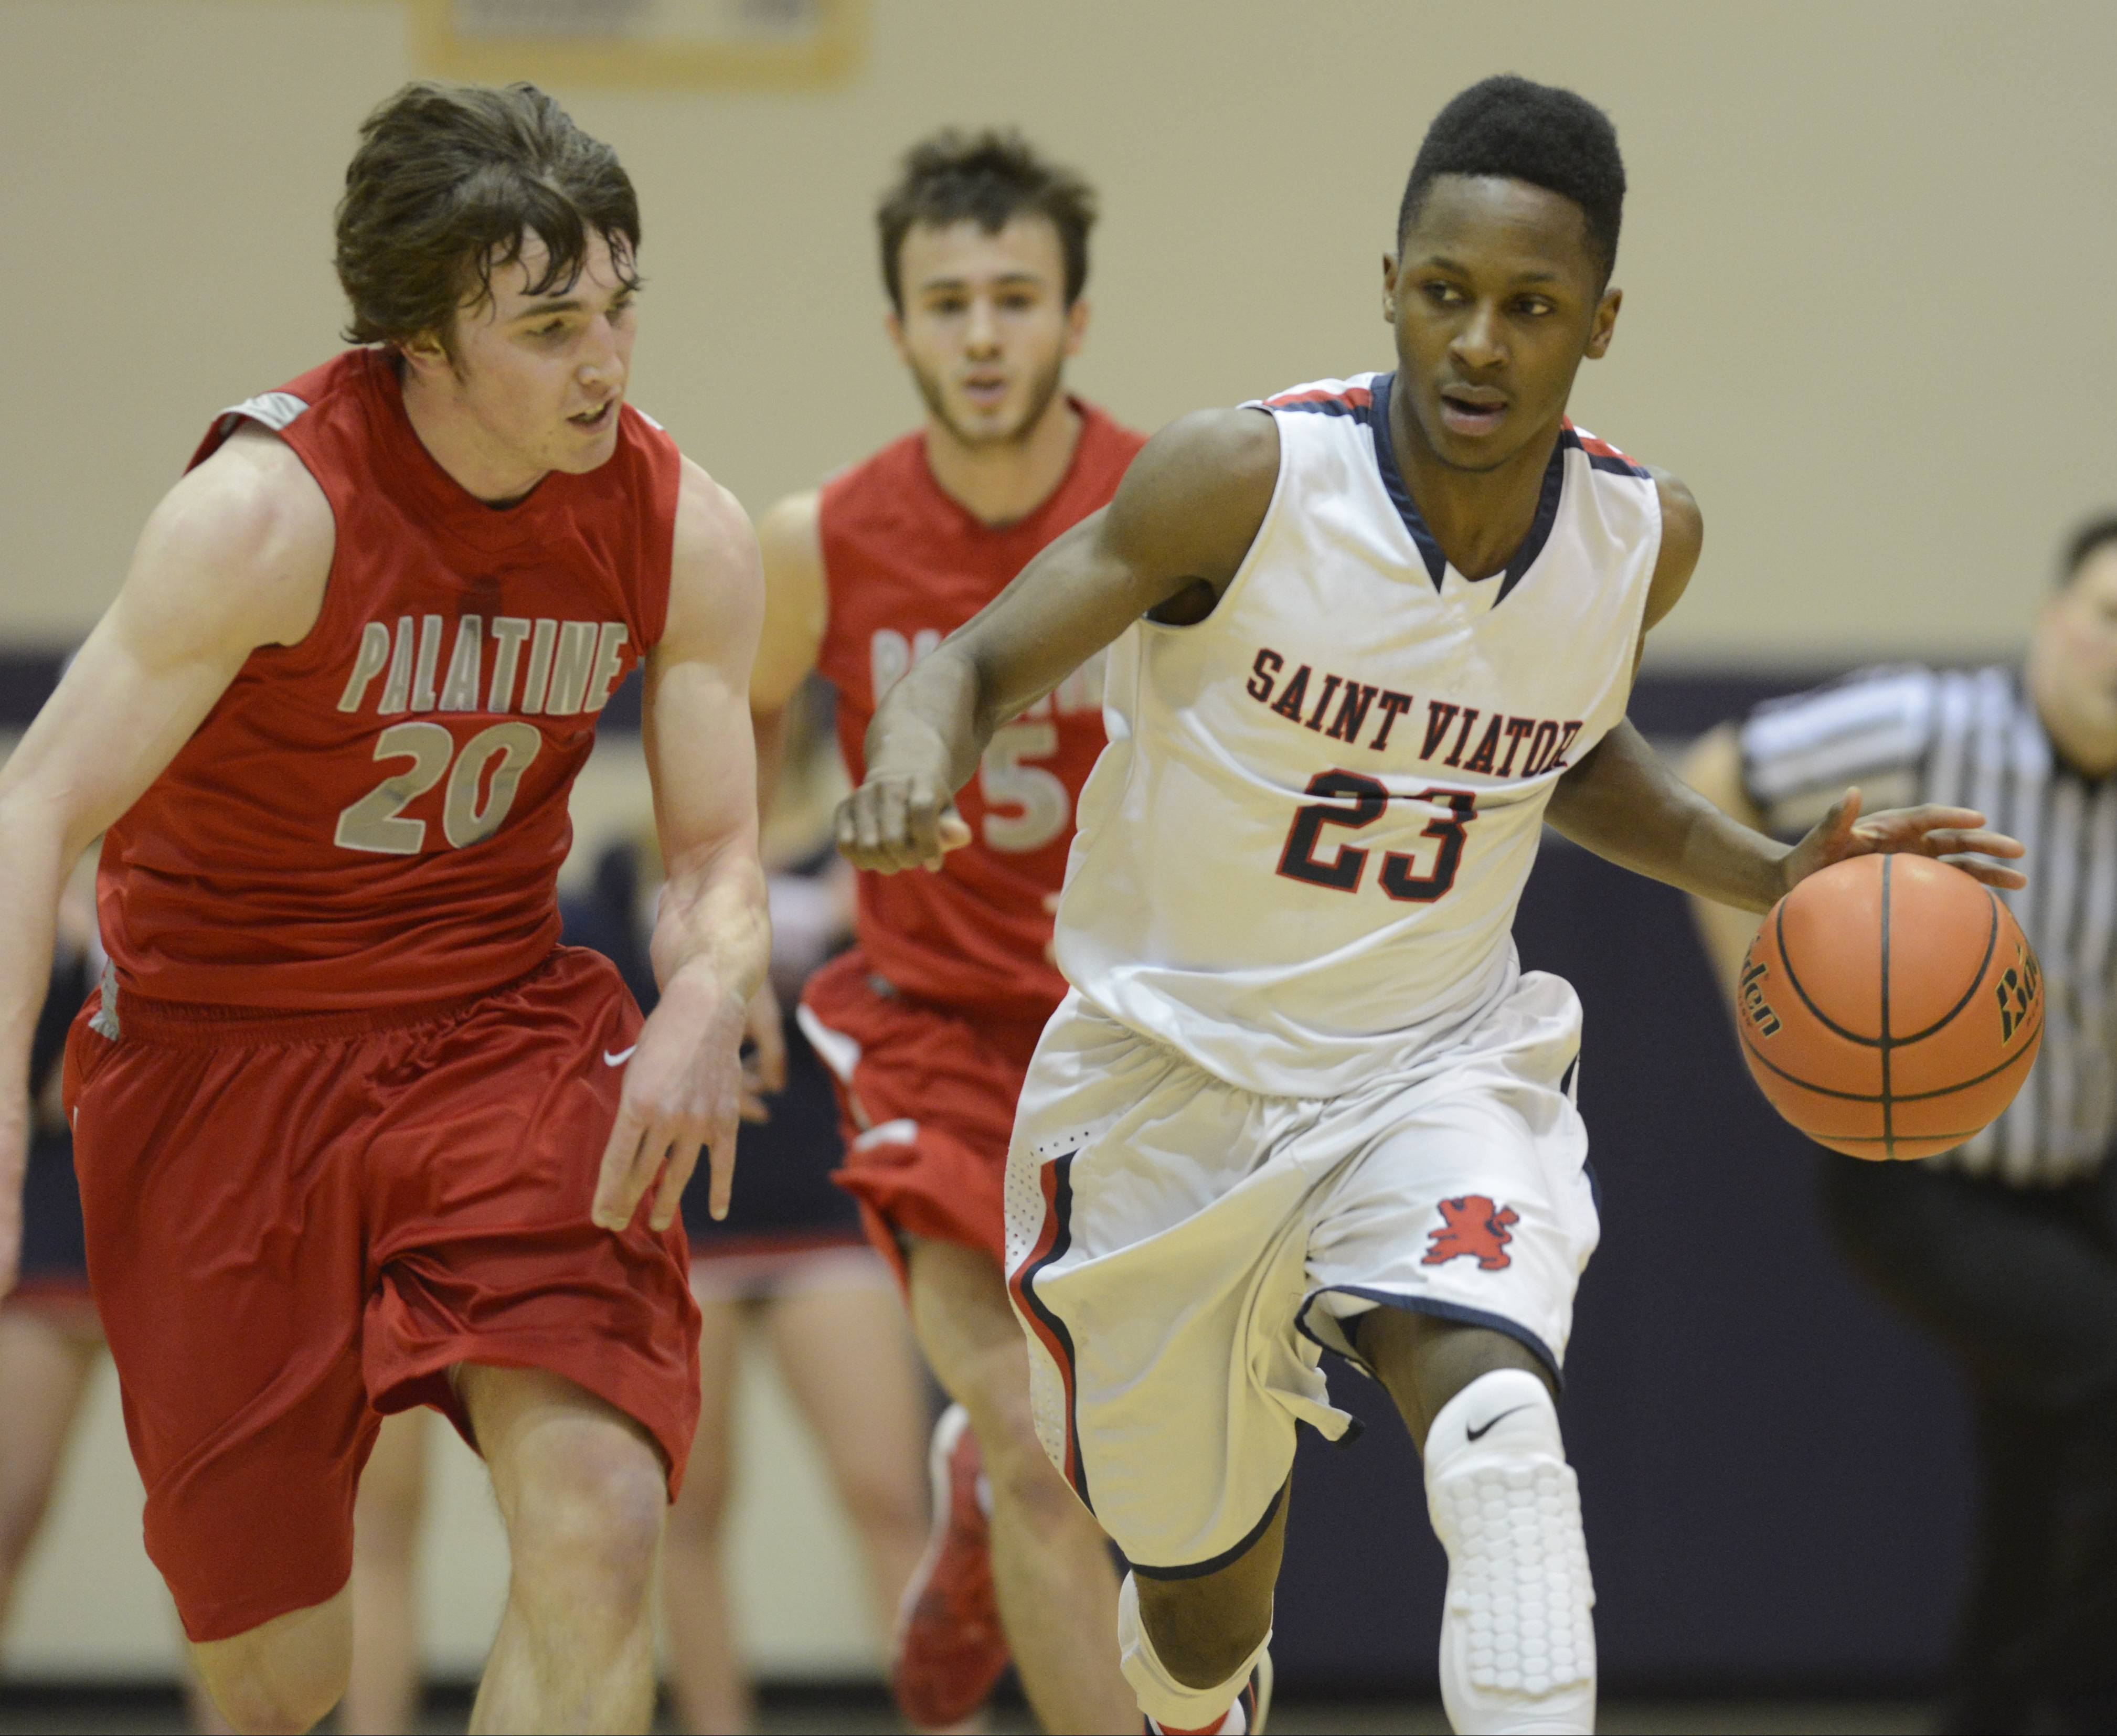 Images: St. Viator vs. Palatine boys basketball